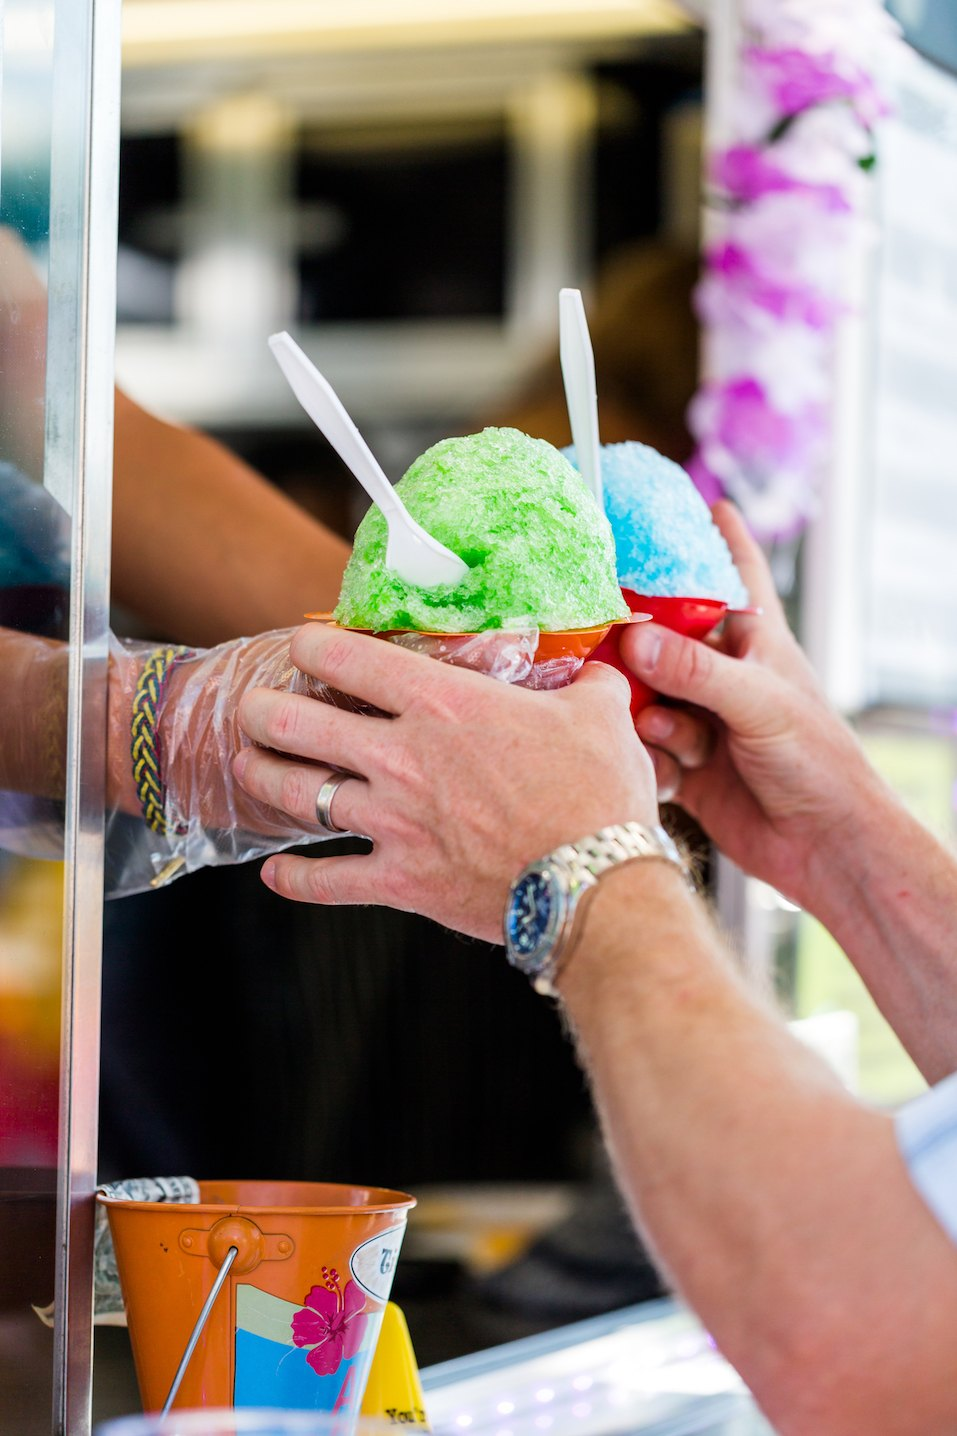 Man getting two snow cones from vendor